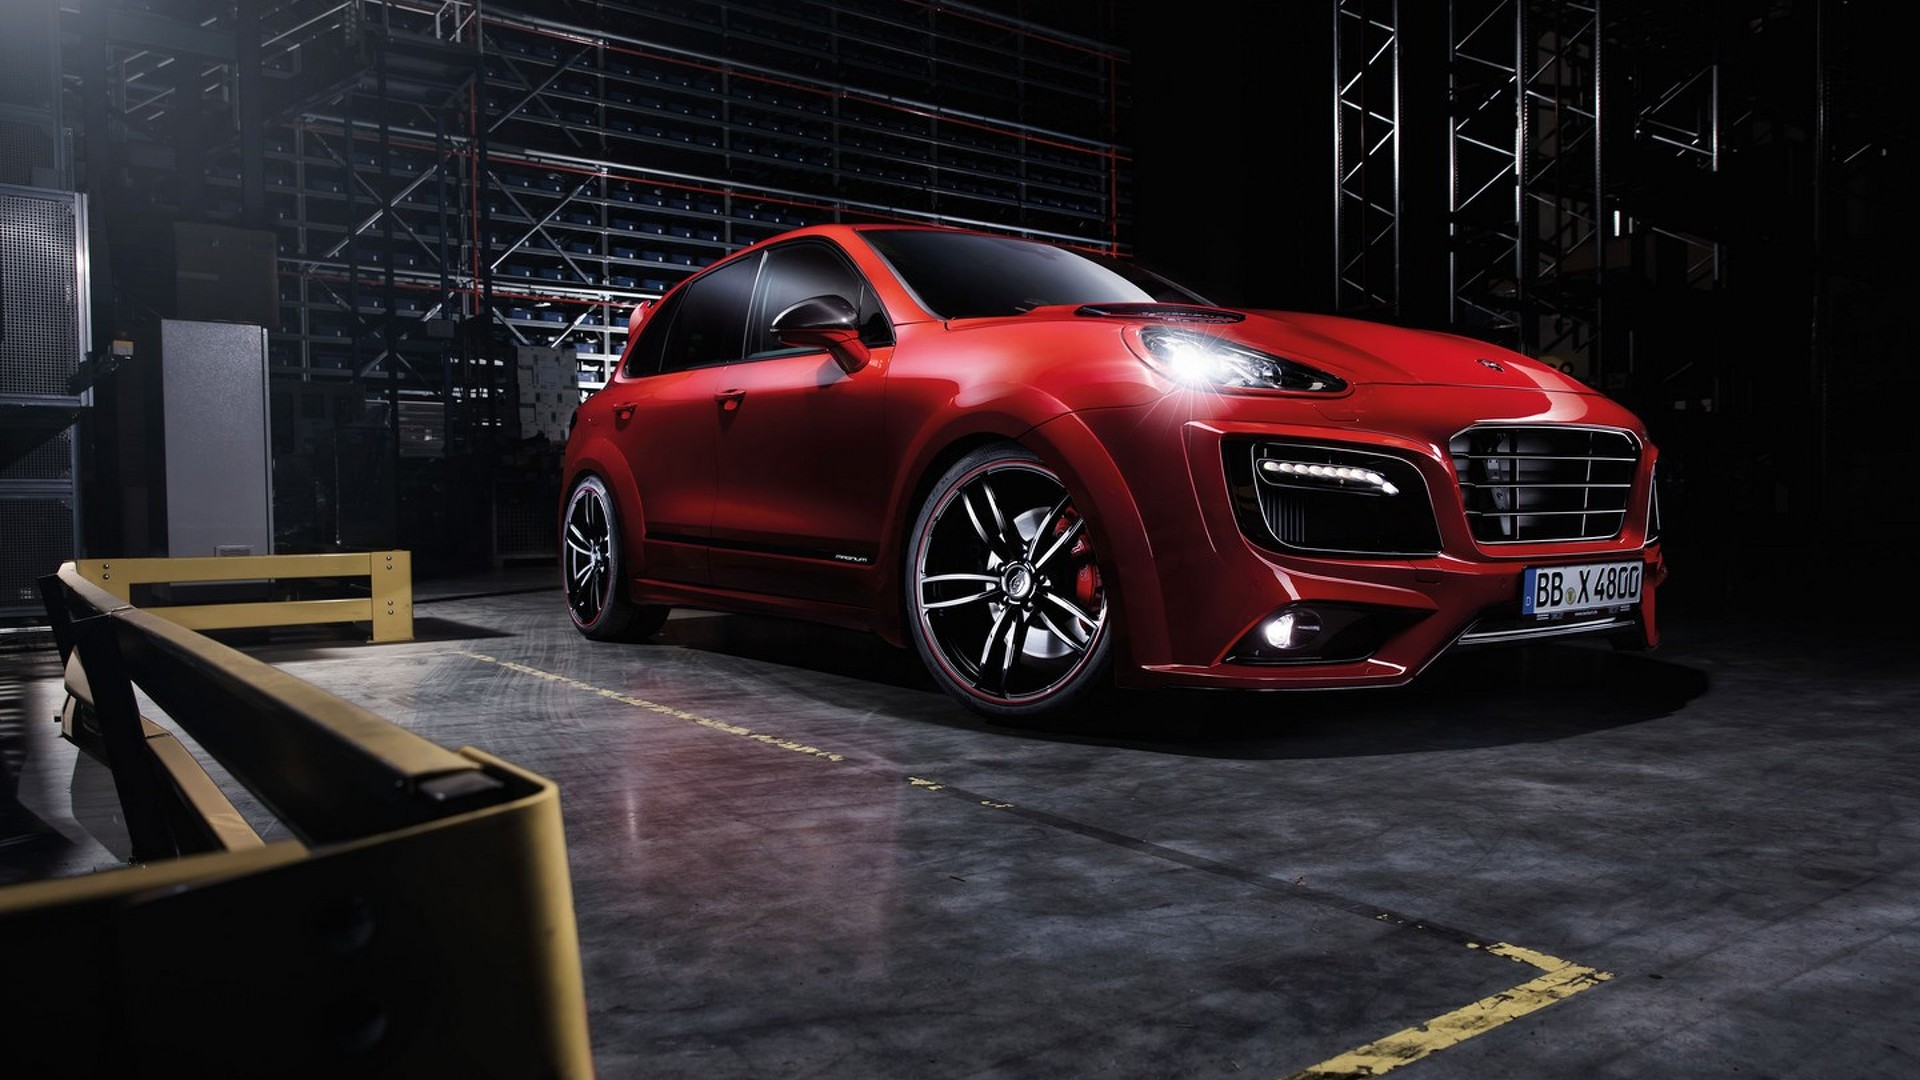 Porsche Cayenne Turbo gains wide body kit and power boost from TECHART